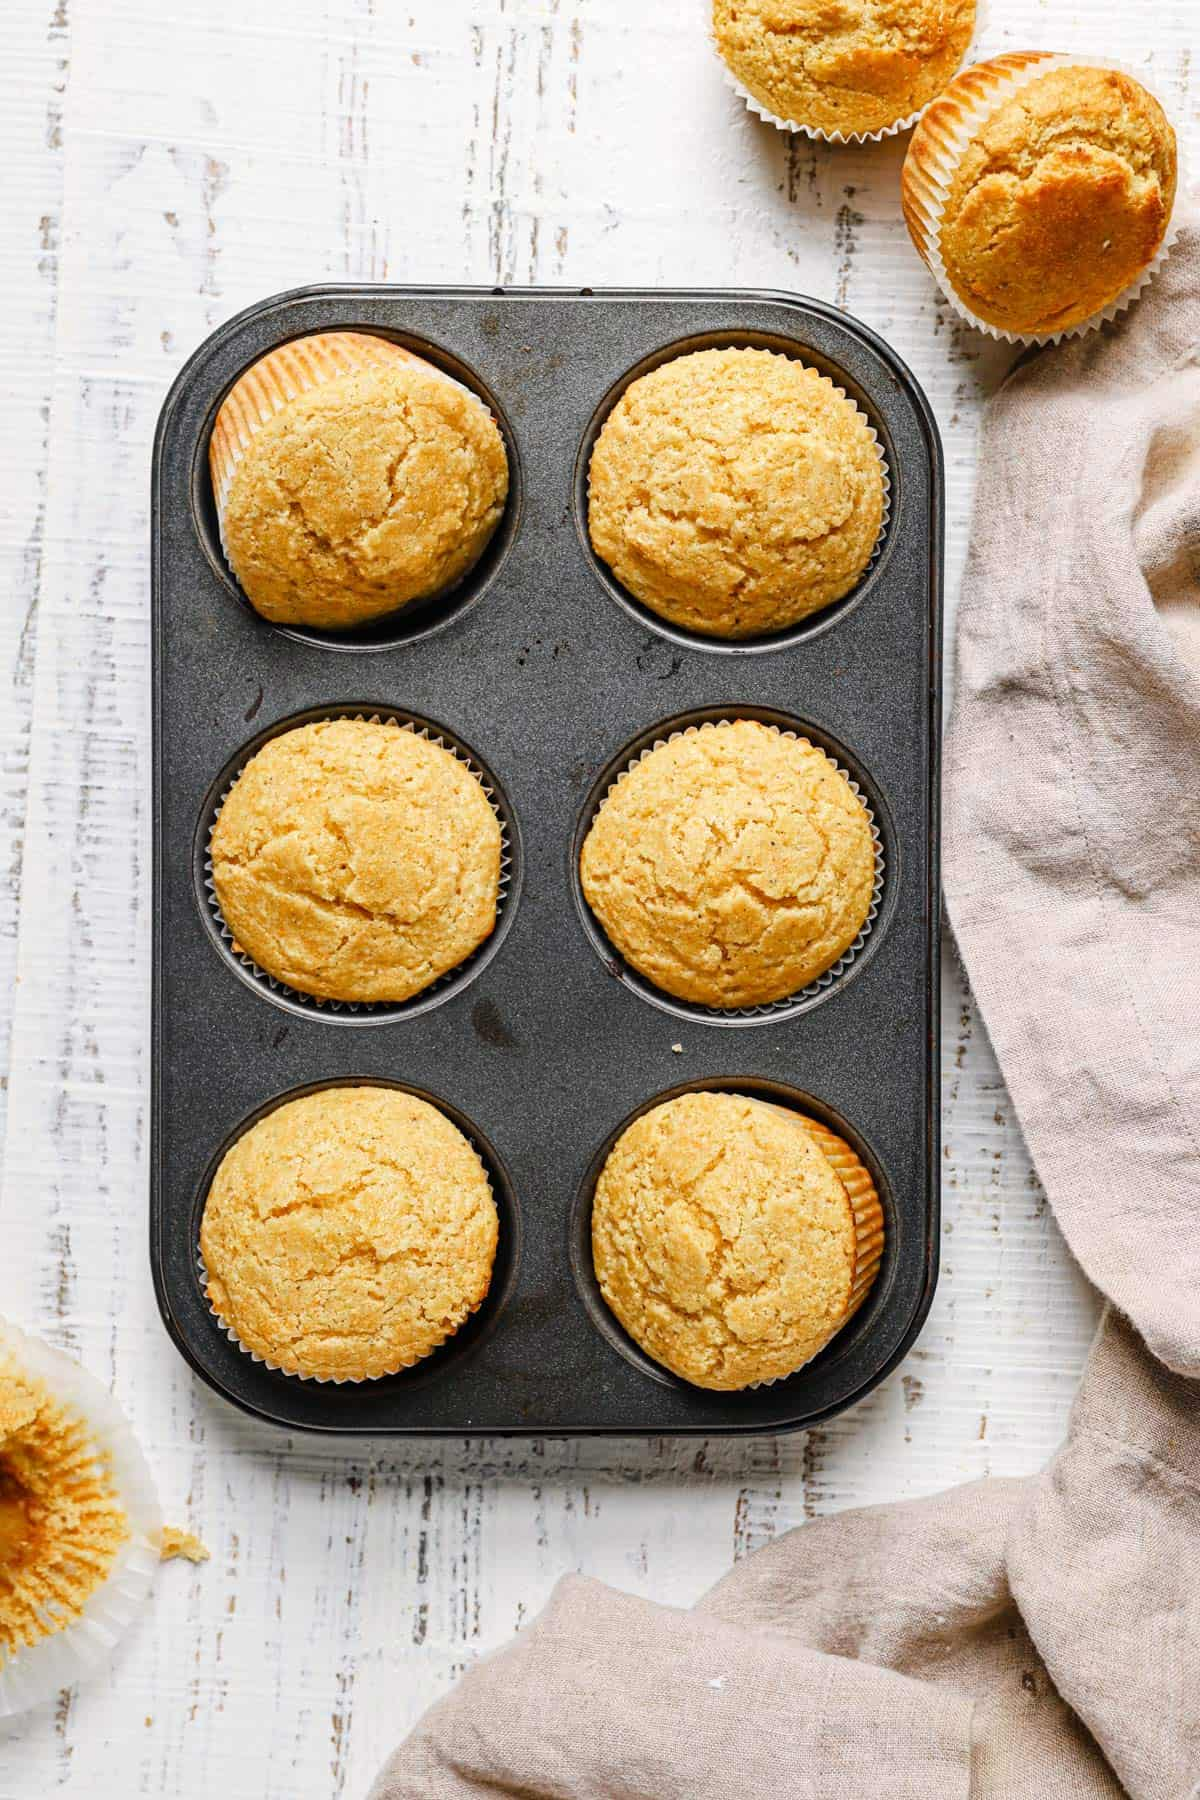 Top down photo of a muffin tin with 6 cornbread muffins on a white counter with two muffins in the top right and a towel in the bottom right.